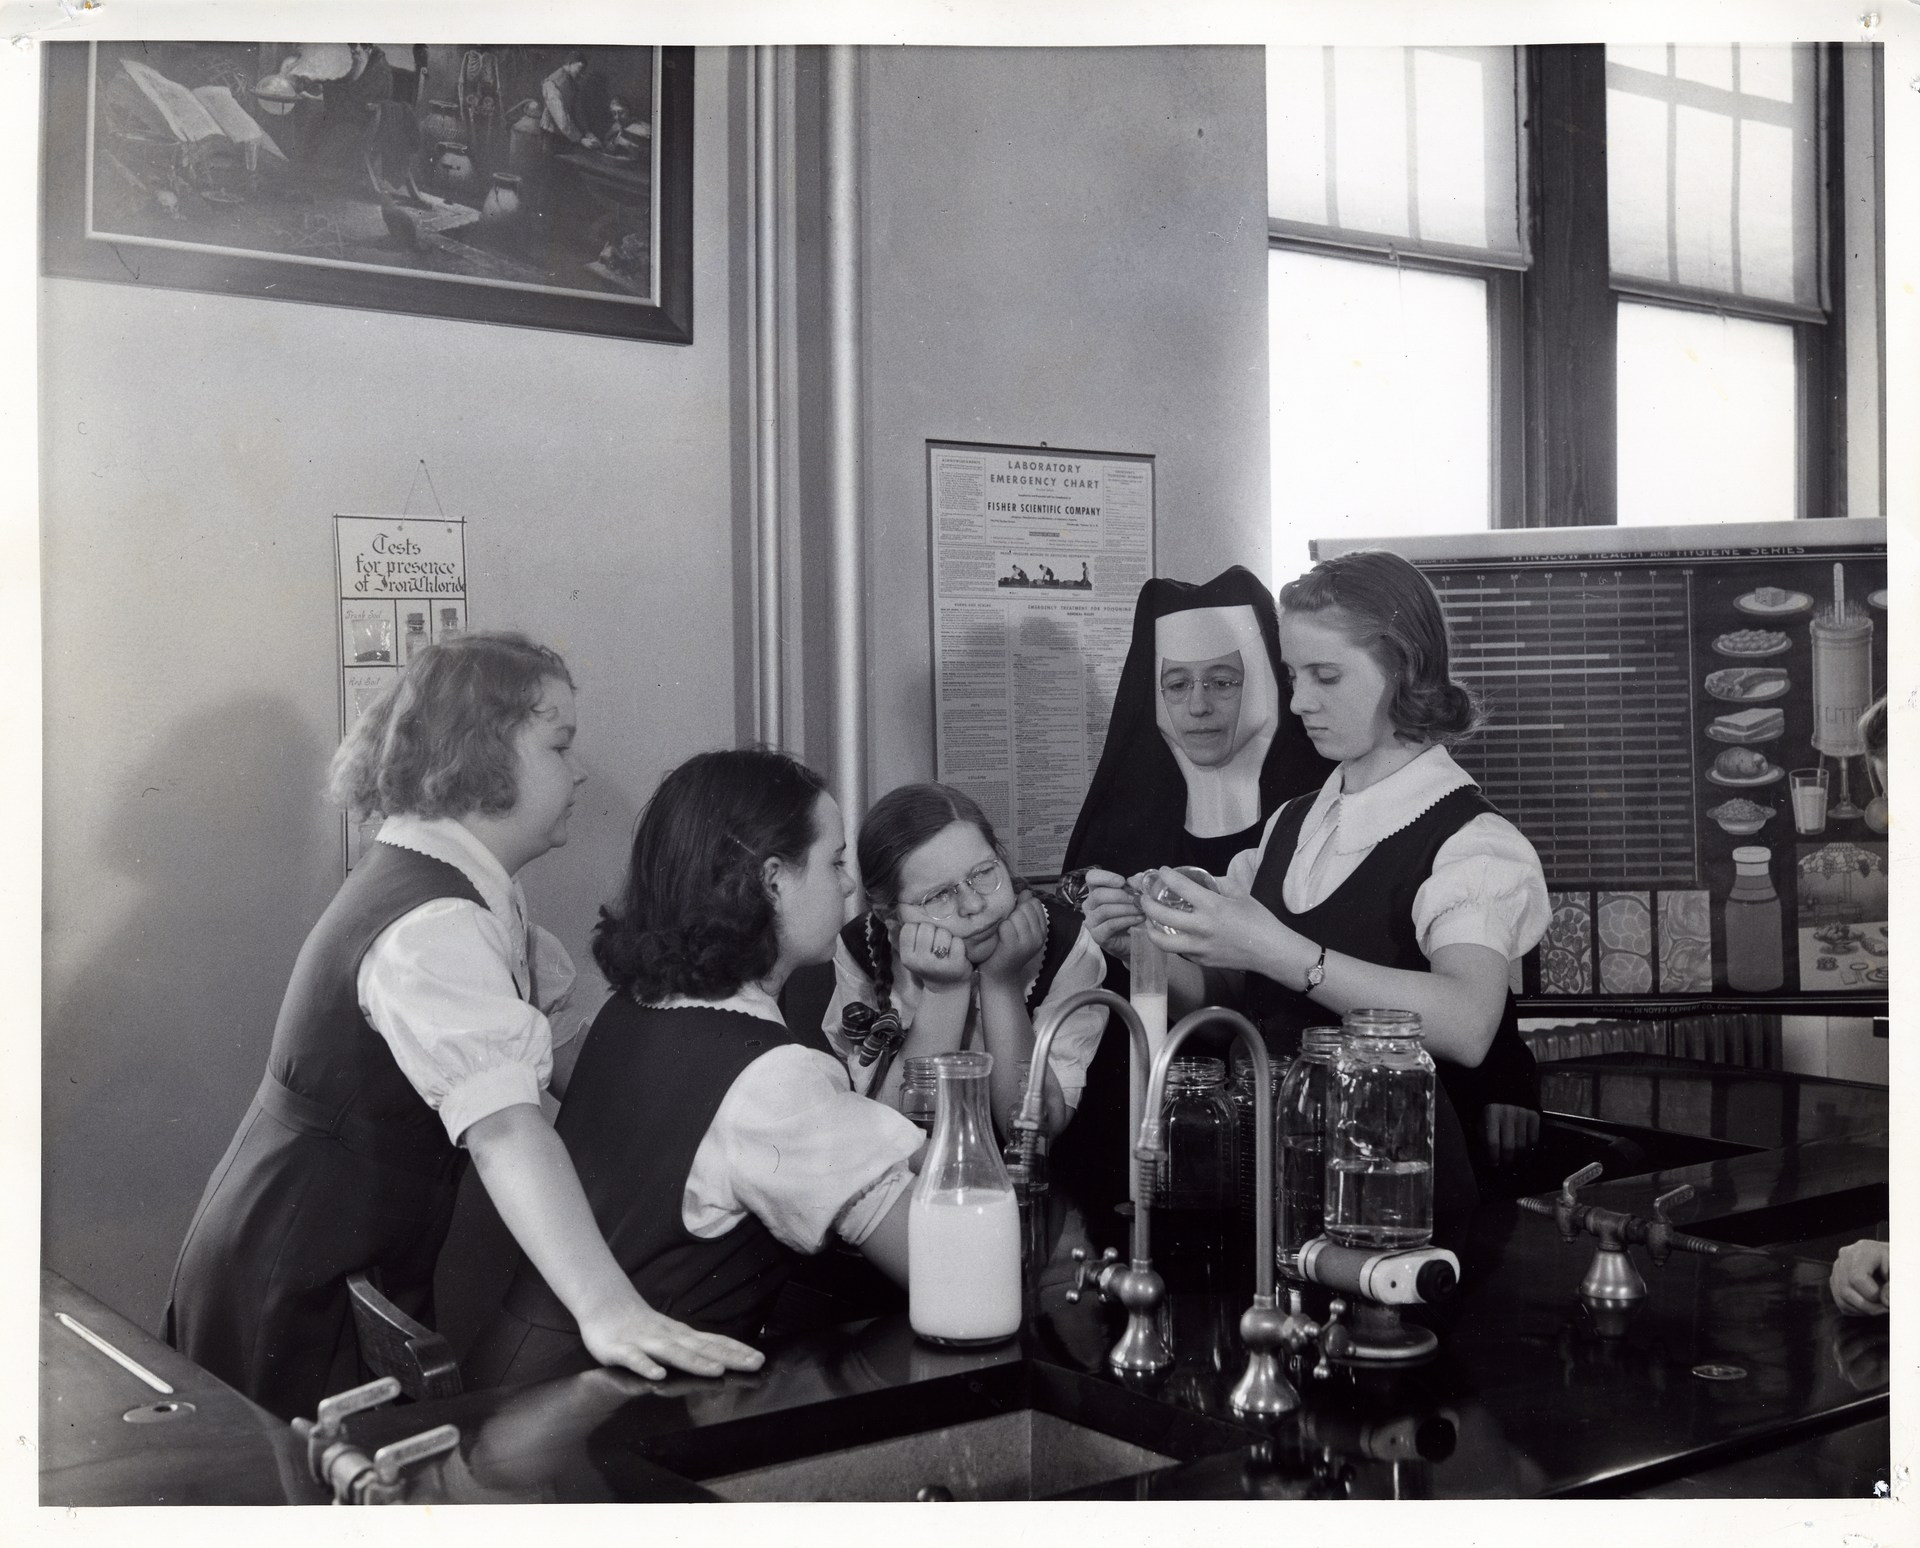 A group of young women learning from a Sister in a science lab